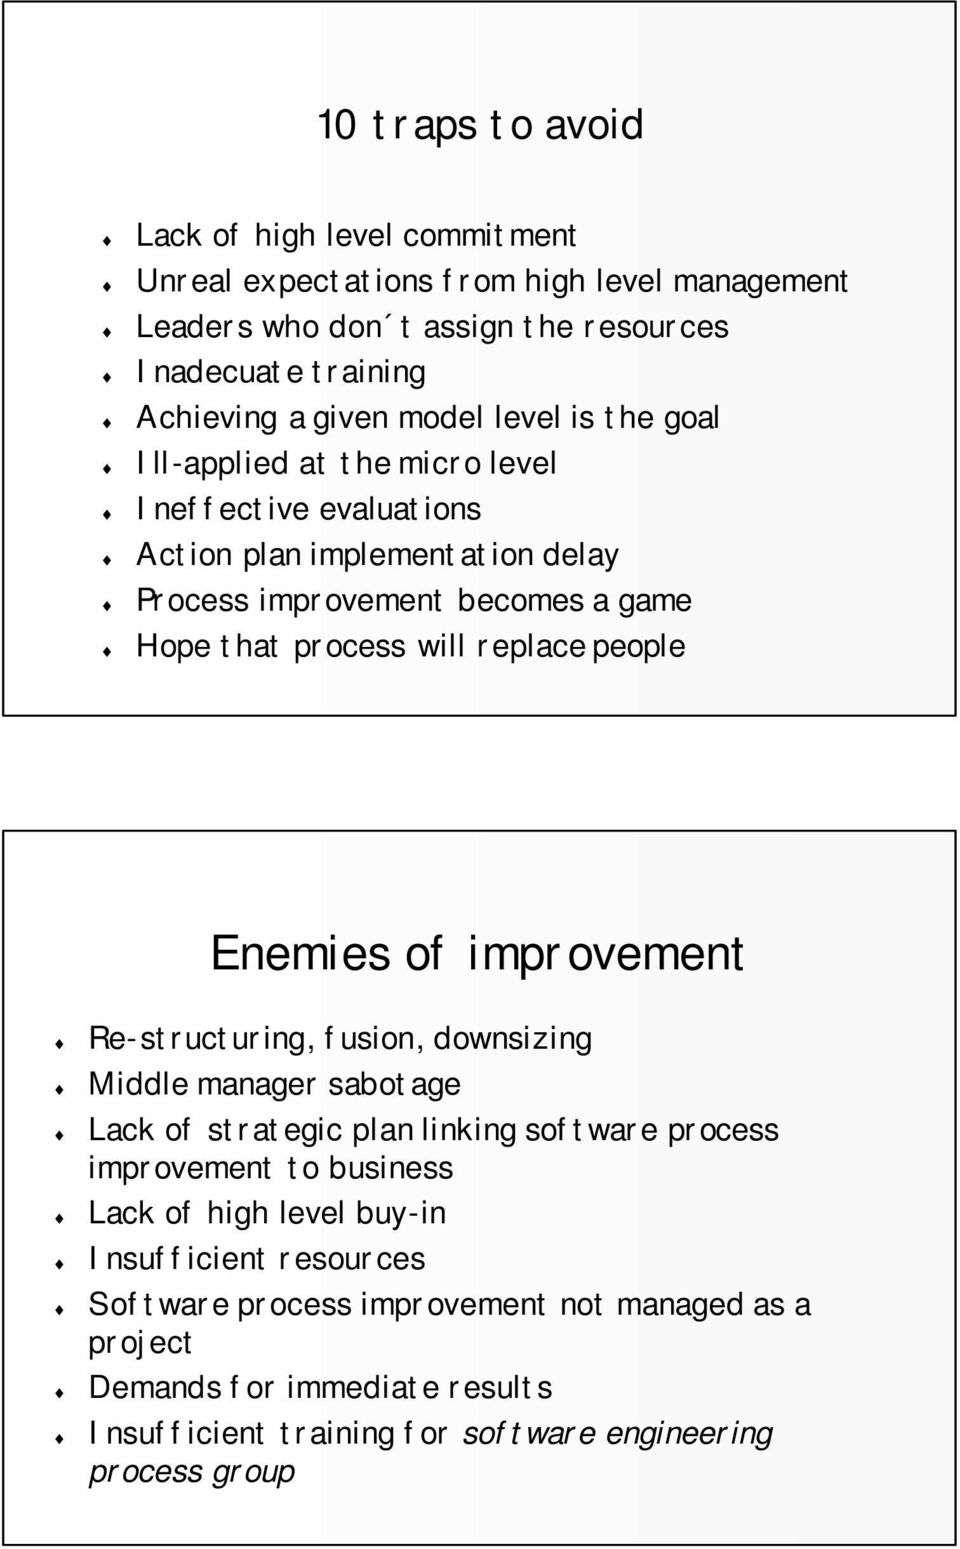 replace people Enemies of improvement Re-structuring, fusion, downsizing Middle manager sabotage Lack of strategic plan linking software process improvement to business Lack